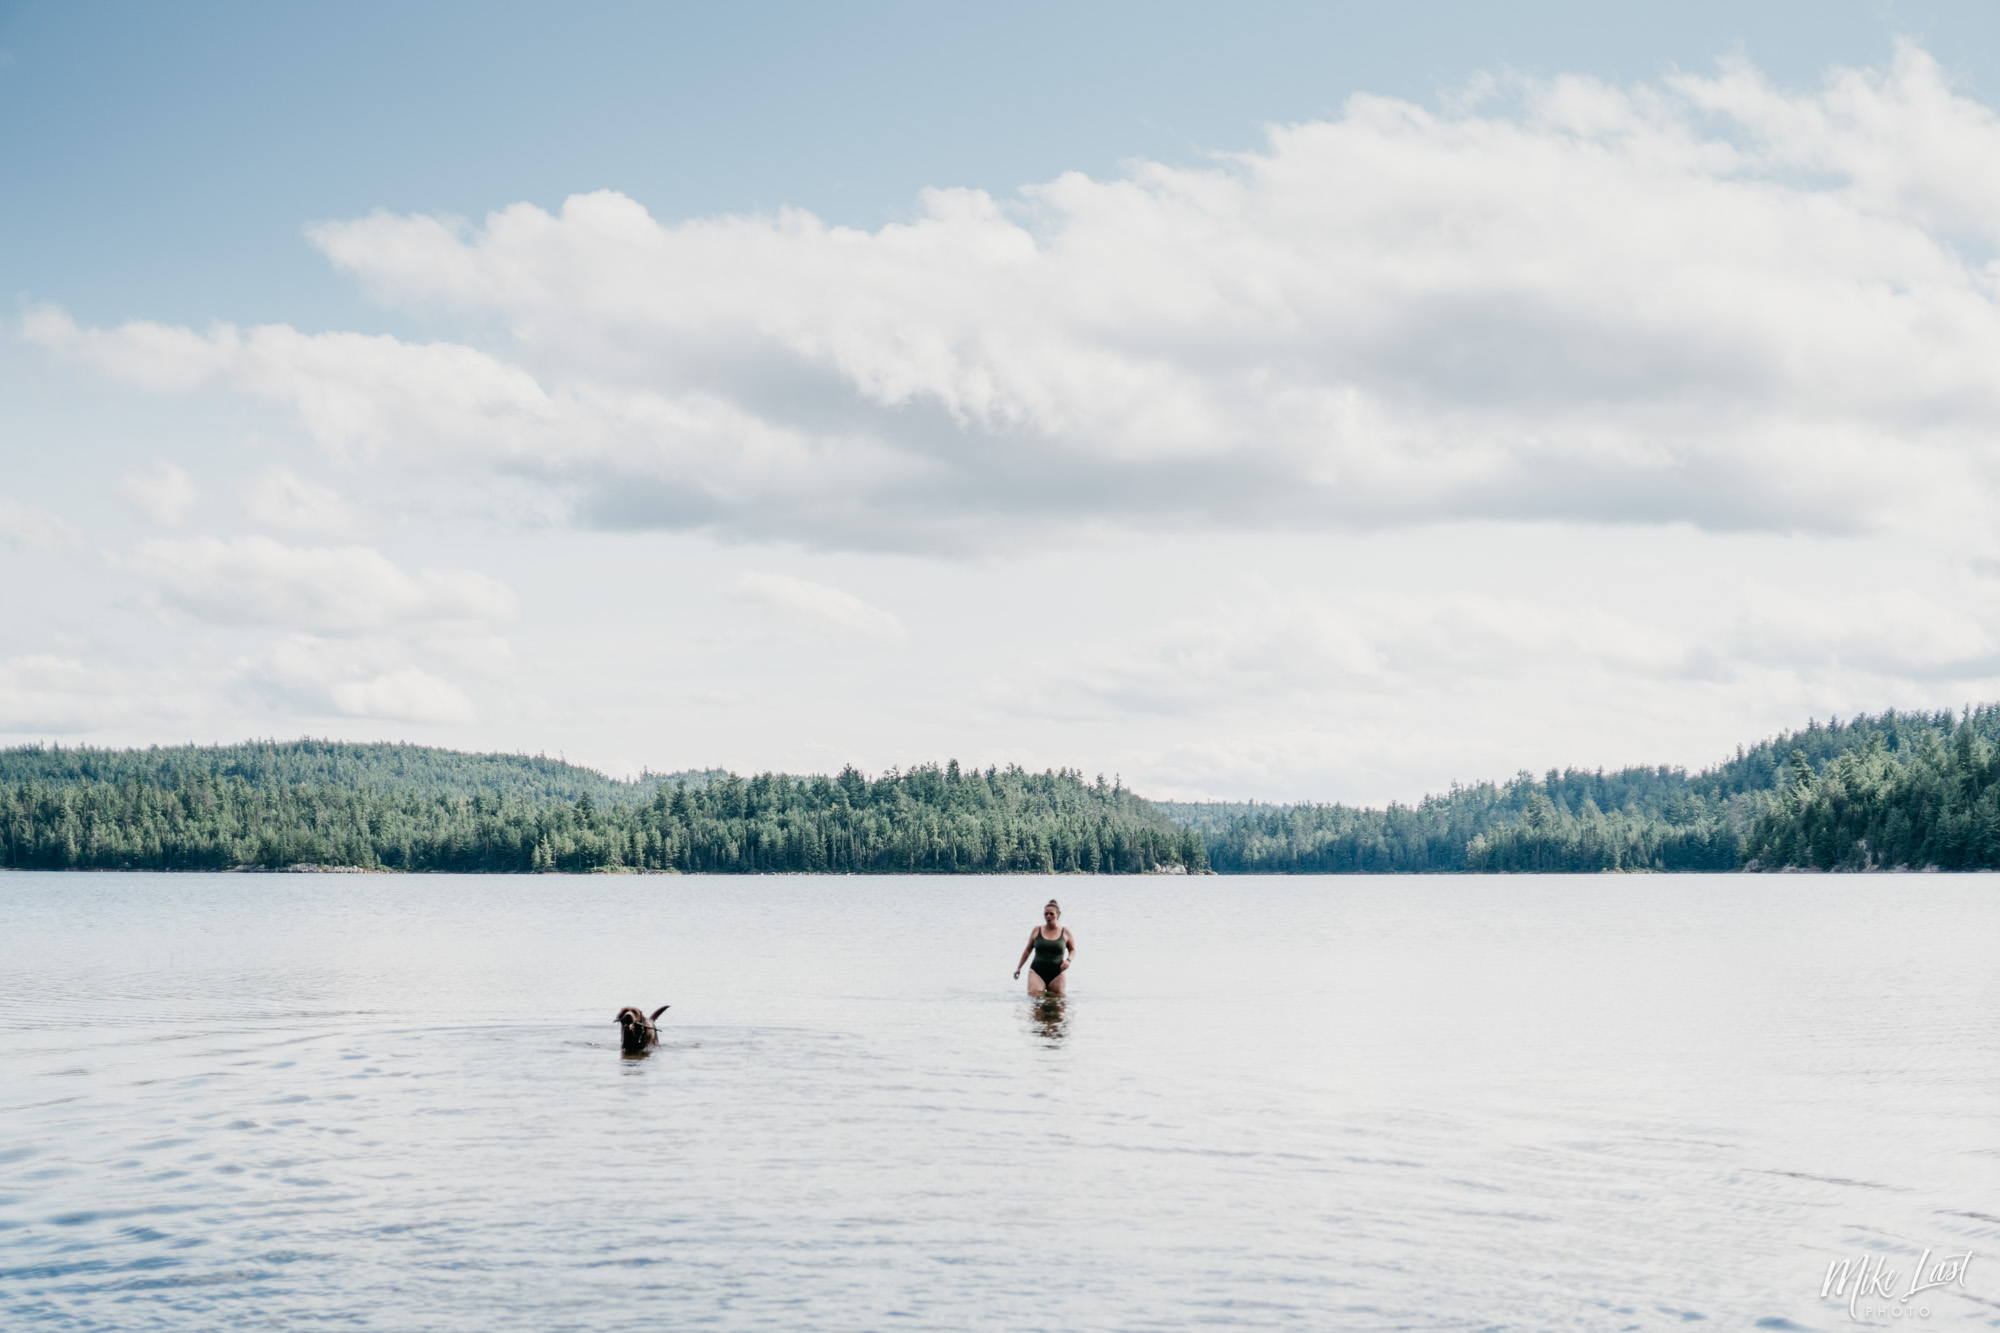 Swimming in McConnell Bay on Chiniguchi Lake - Temagami, ON Canoe Trip